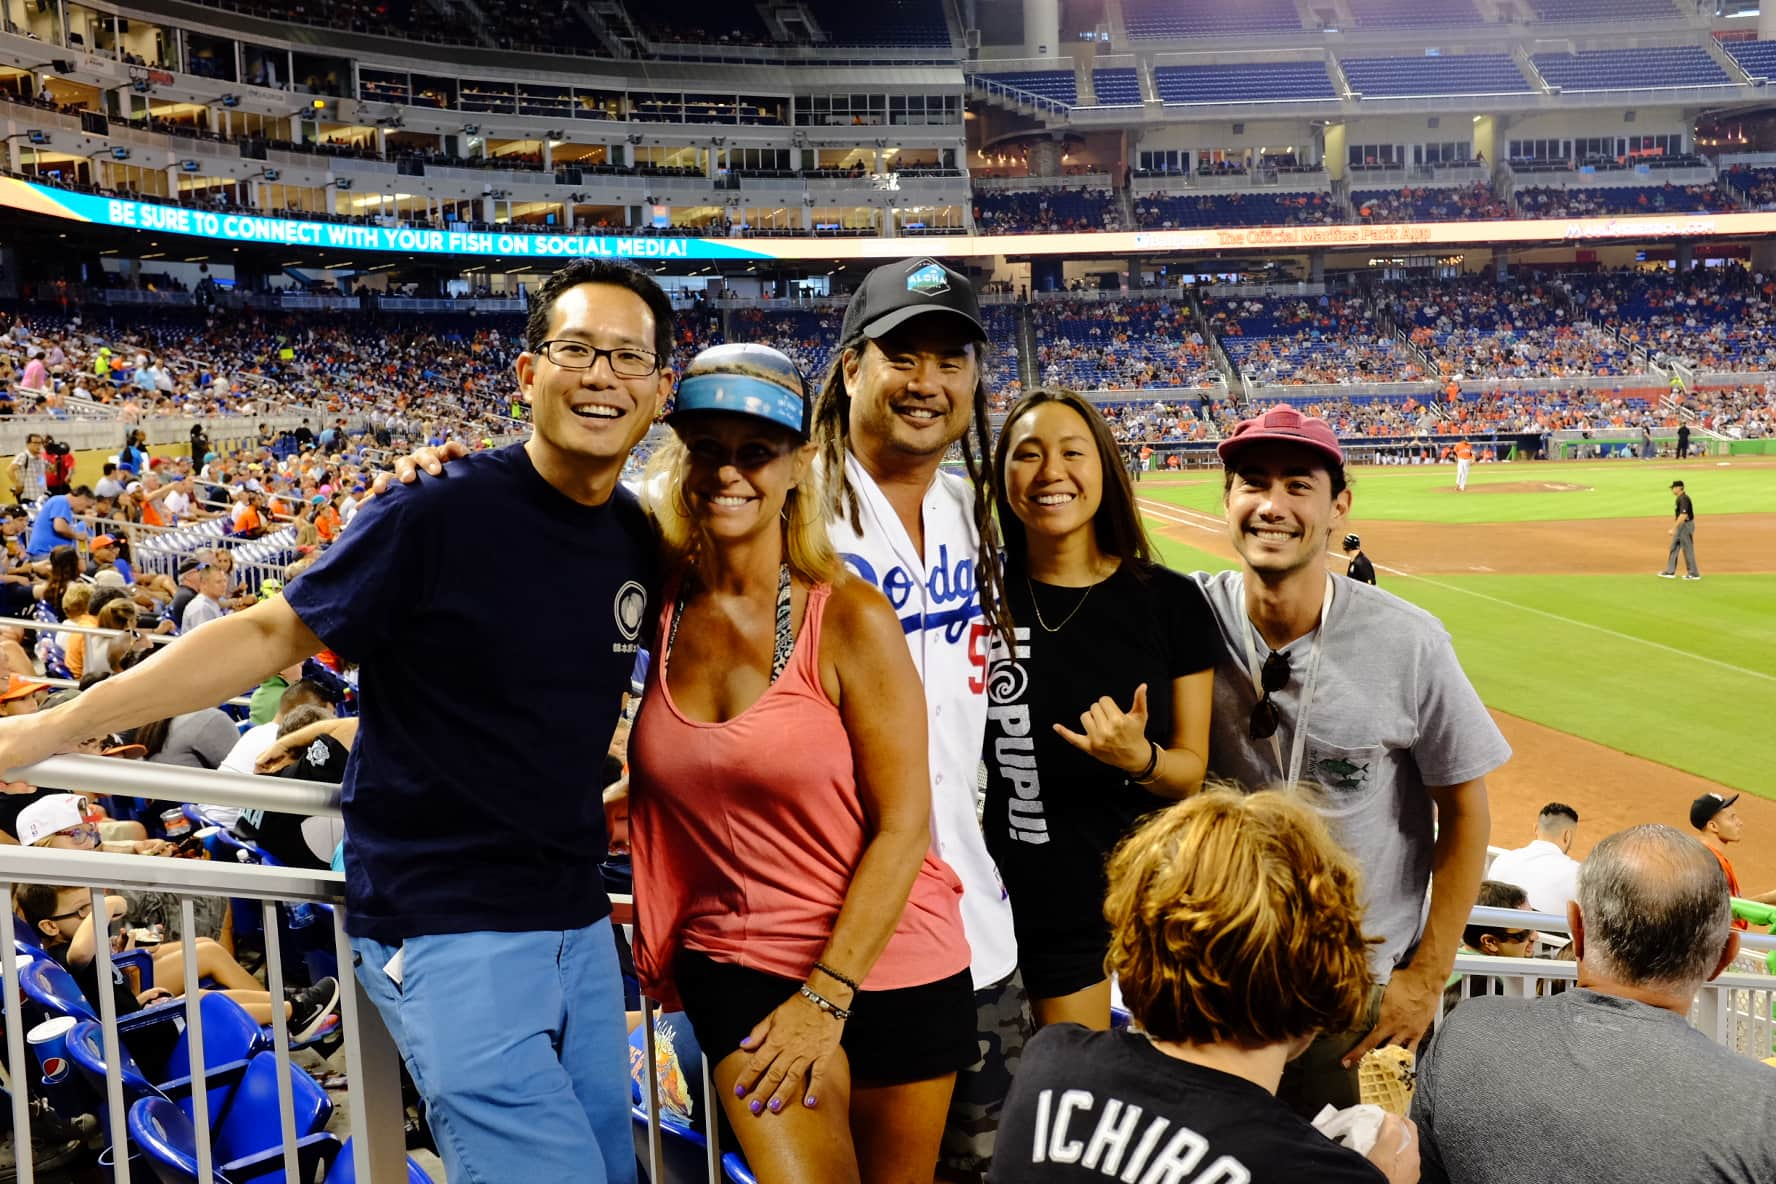 """At the Marlins Game"" Miami, 2016"